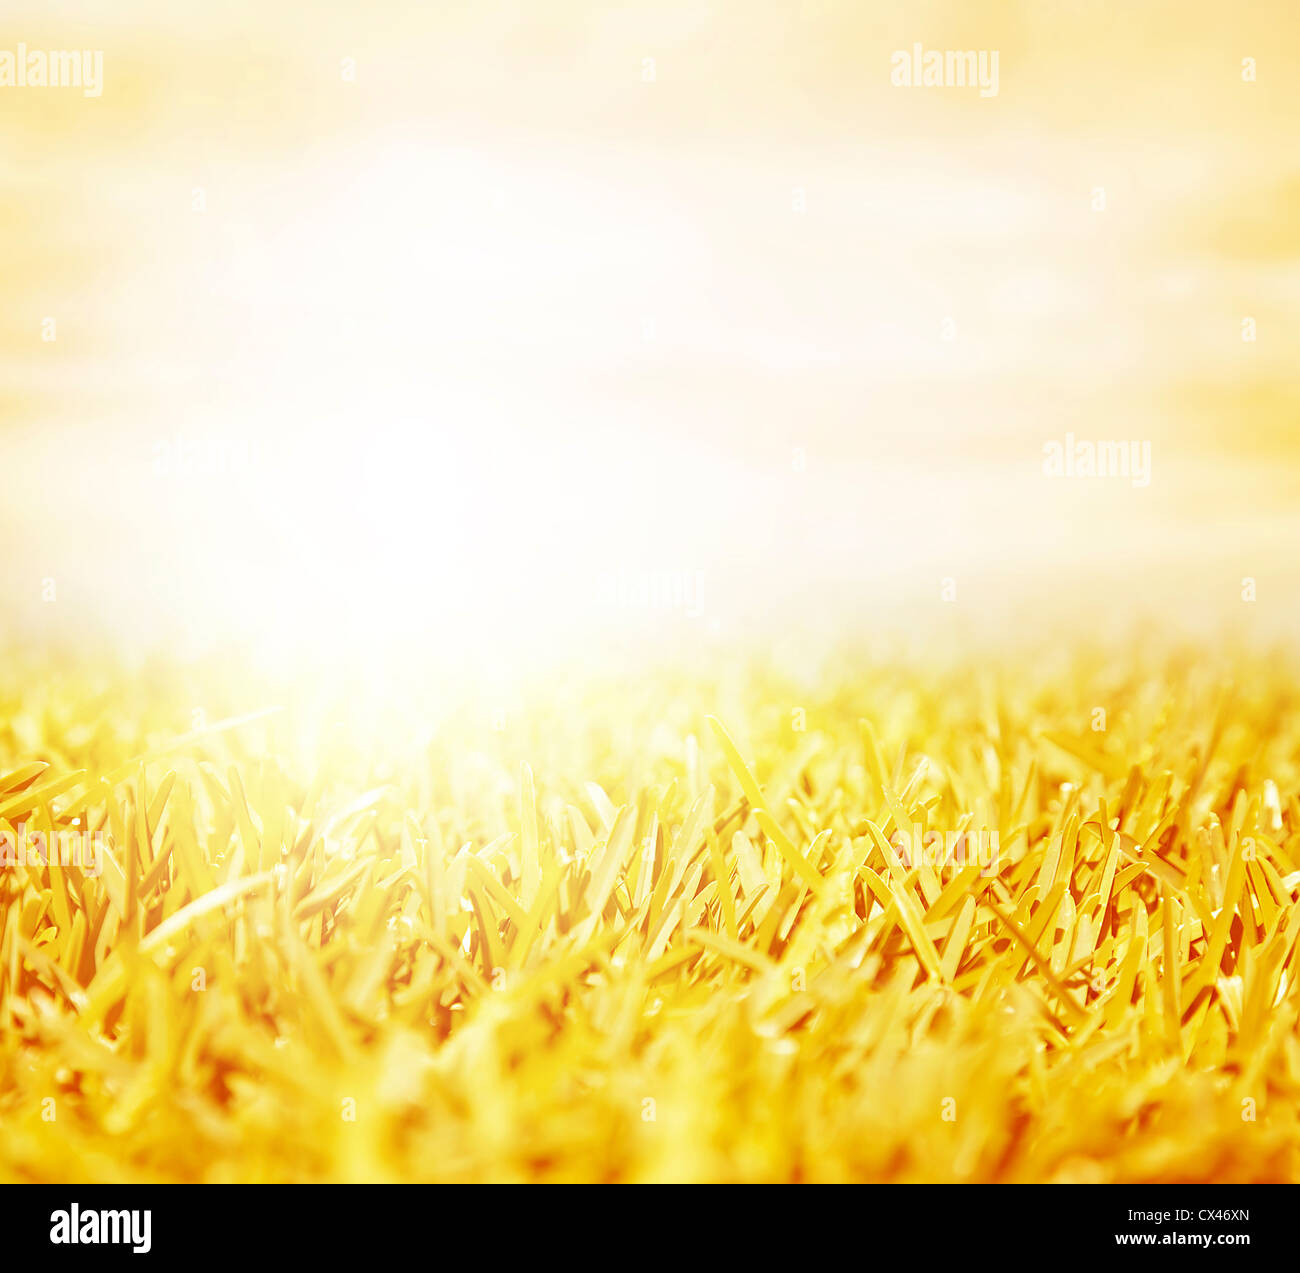 Picture of beautiful golden wheat field with bright sun shine, abstract autumn natural background, agriculture landscape - Stock Image